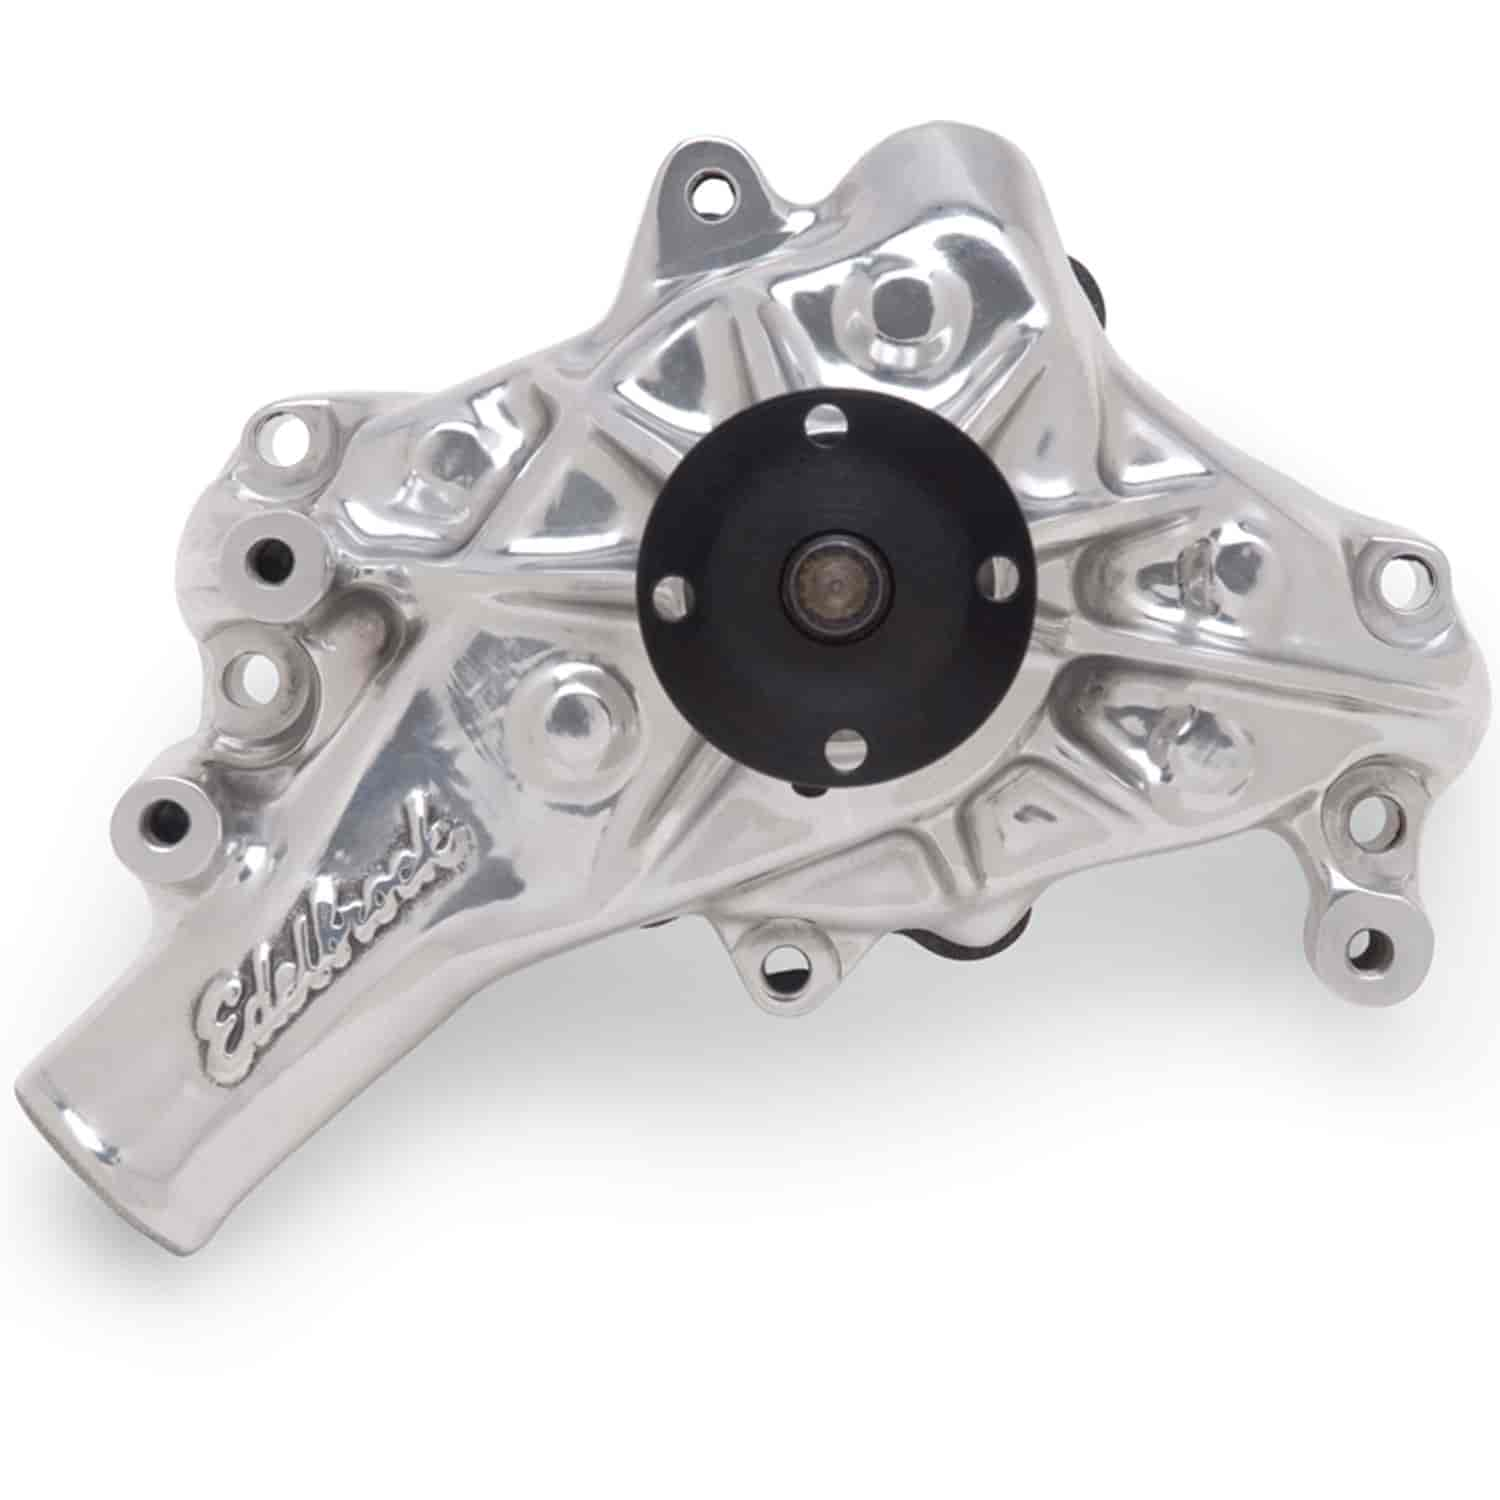 Edelbrock 8821 - Edelbrock Victor Series Water Pumps - Polished Finish